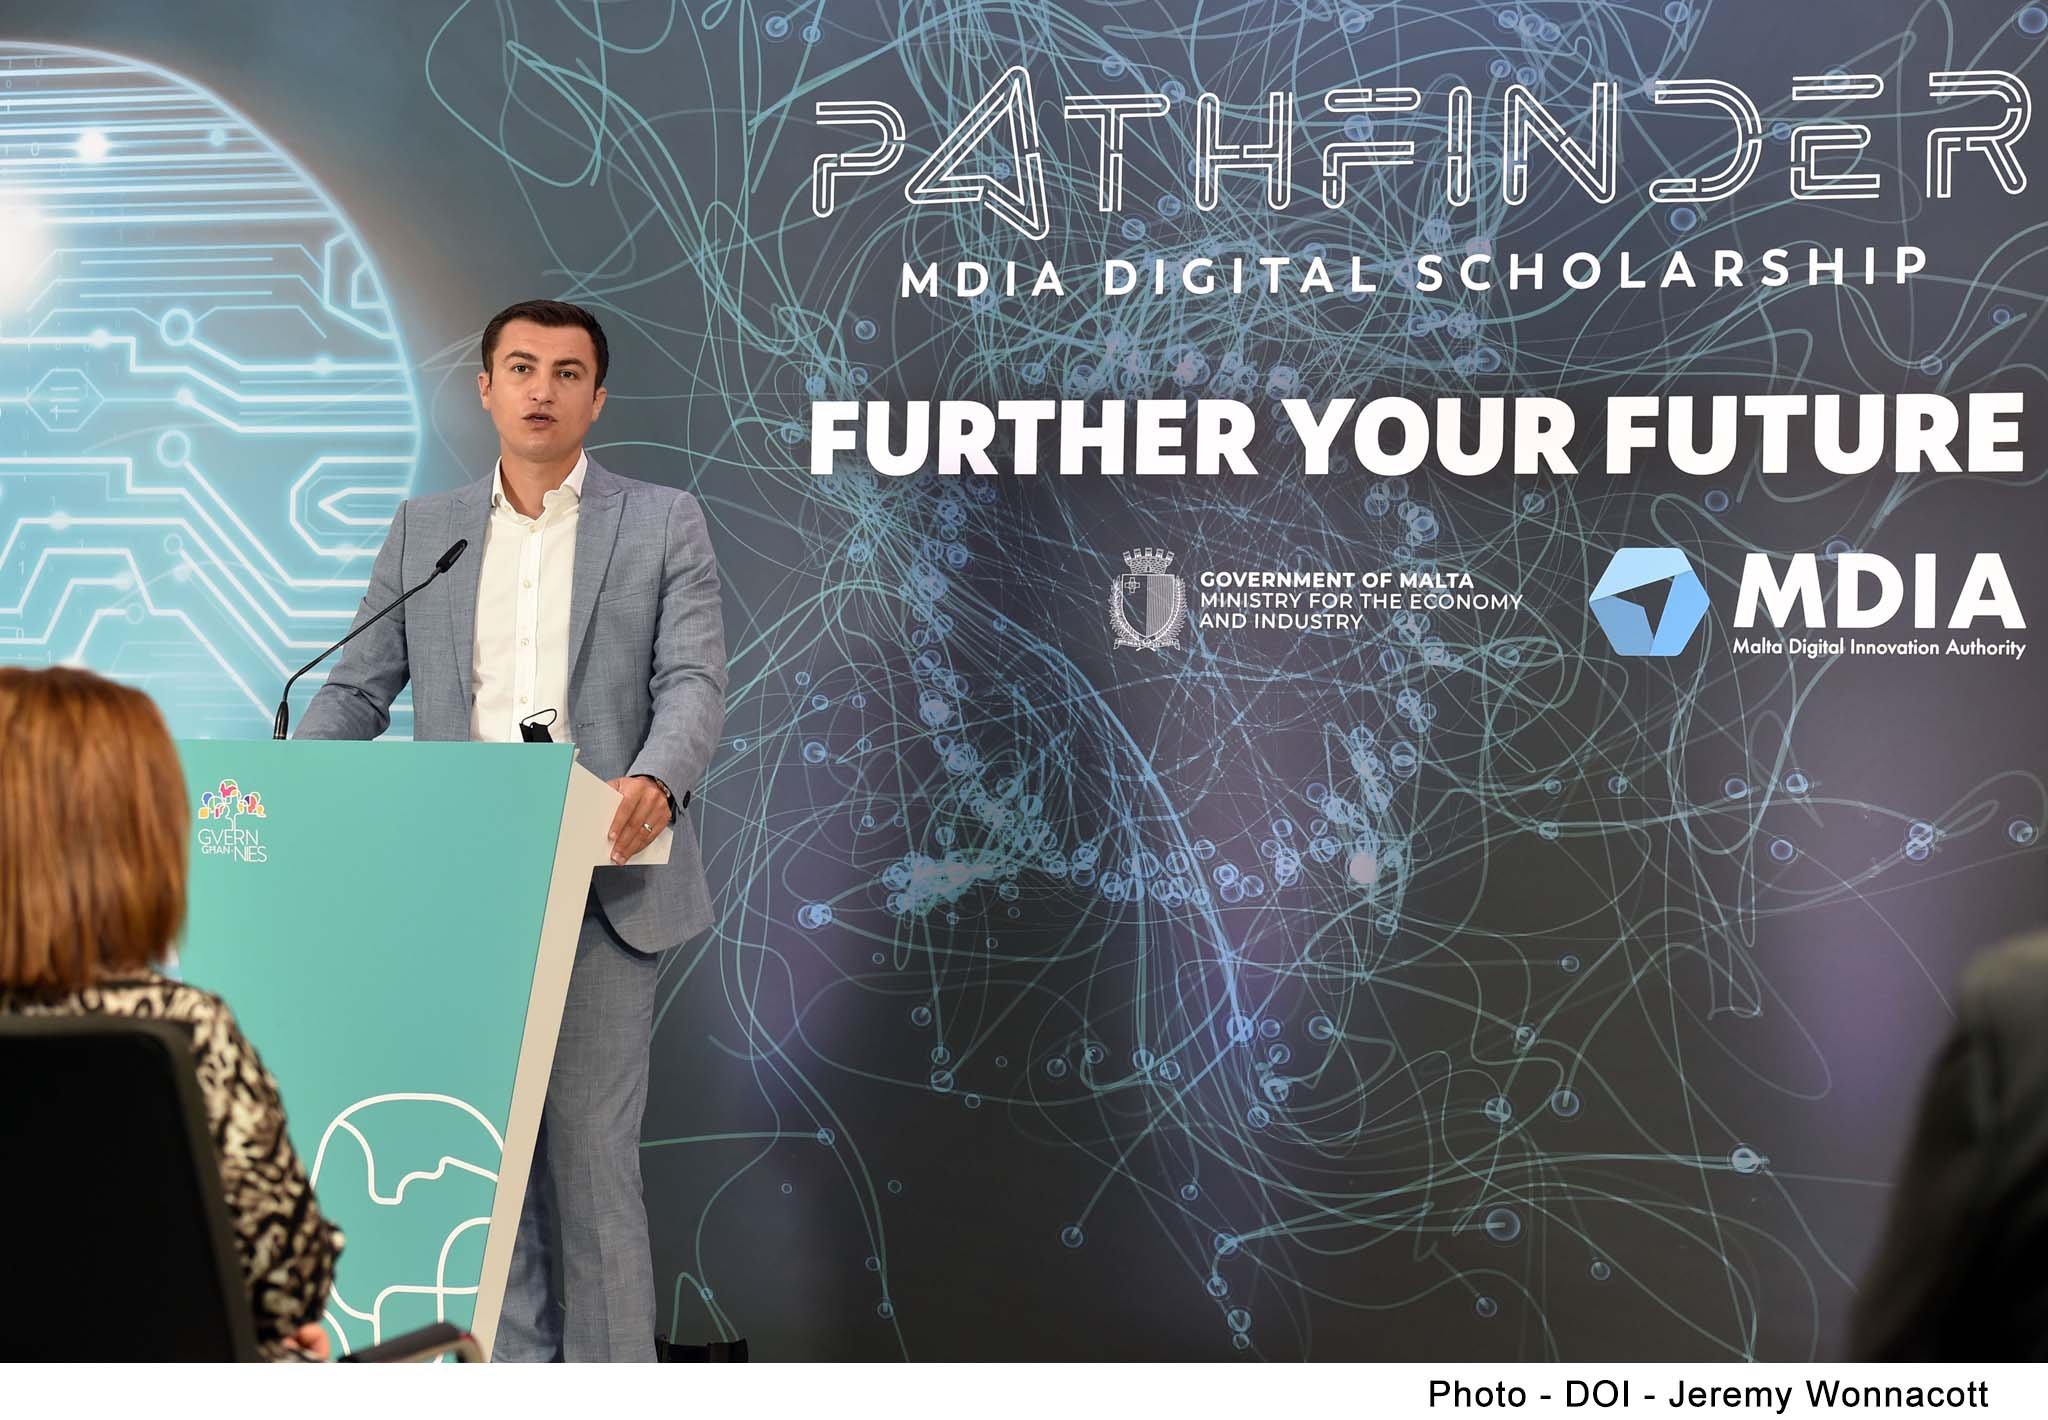 €100,000 in scholarships for studies in Artificial Intelligence at Masters or Doctorate level